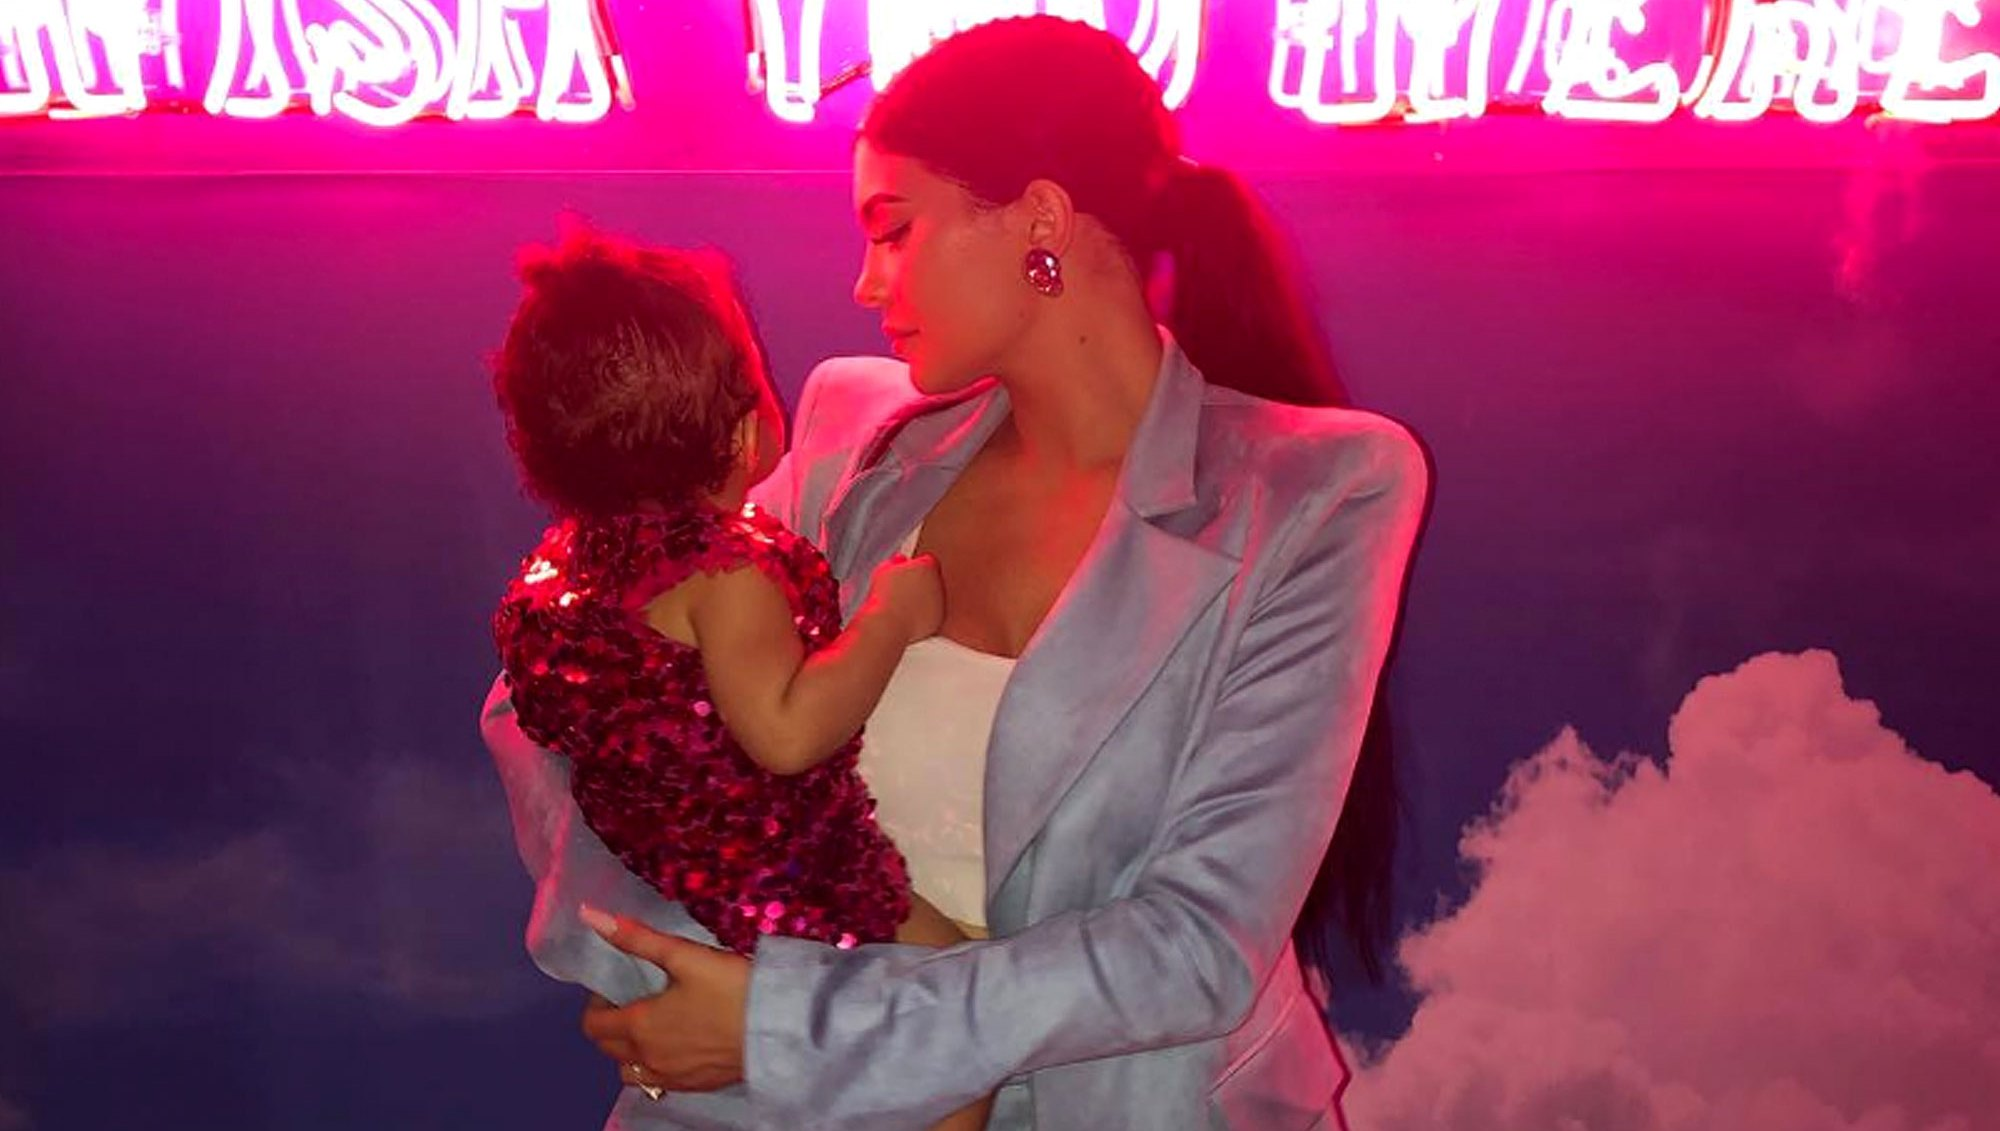 Kylie Jenner's Birthday Party for Stormi Featured Tons of Awesome Eats: See the French Fries, Cake and More